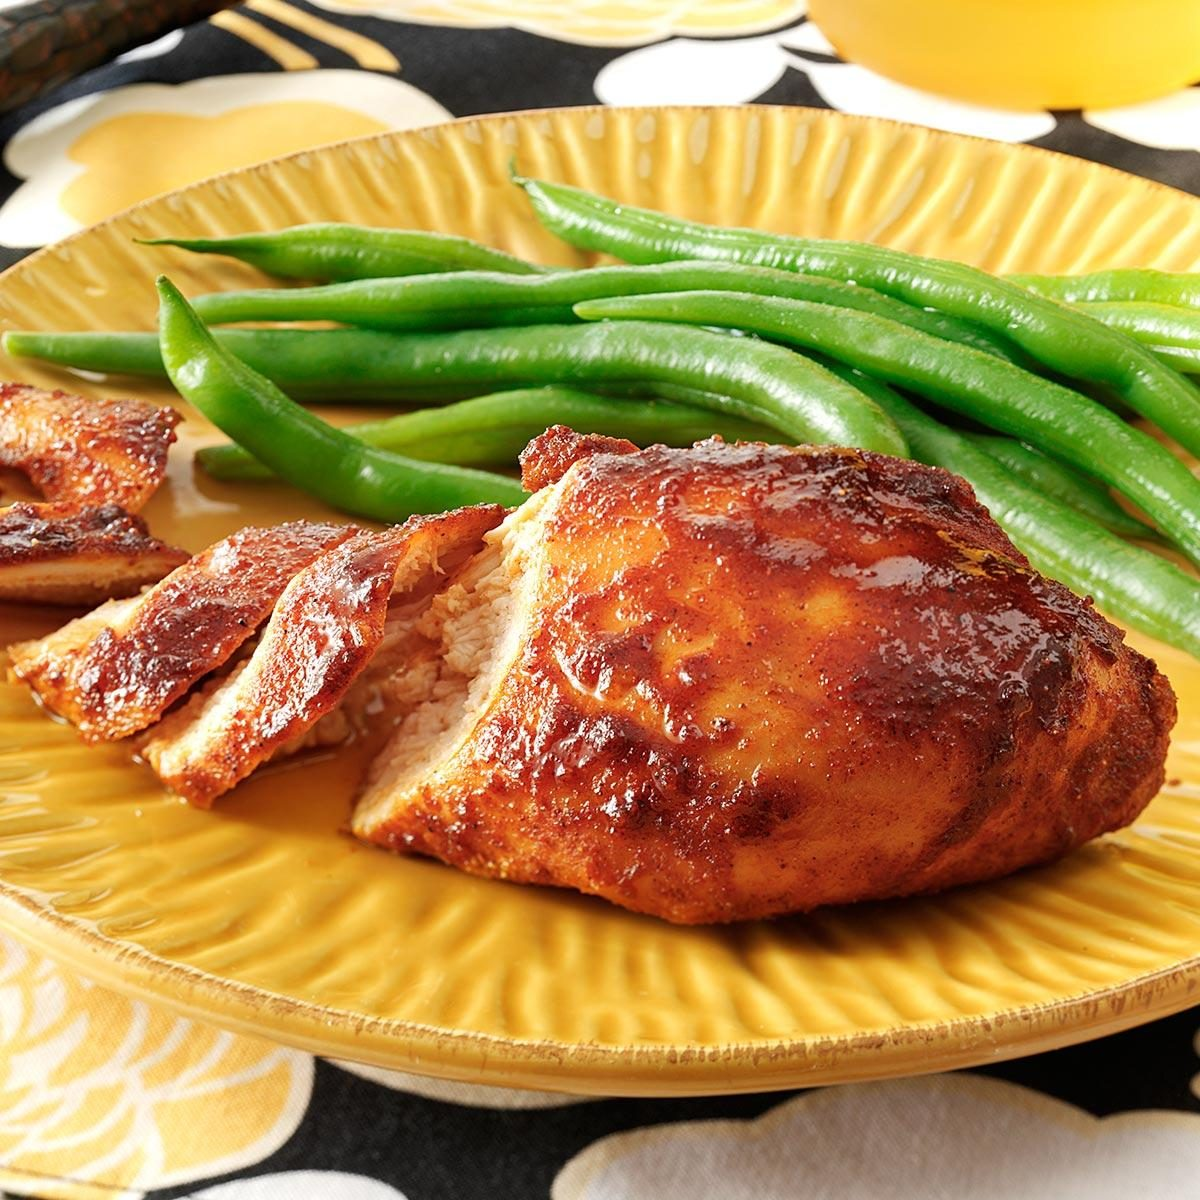 Easy Chicken Breast Recipes For A Crowd: Honey & Spice Baked Chicken Recipe